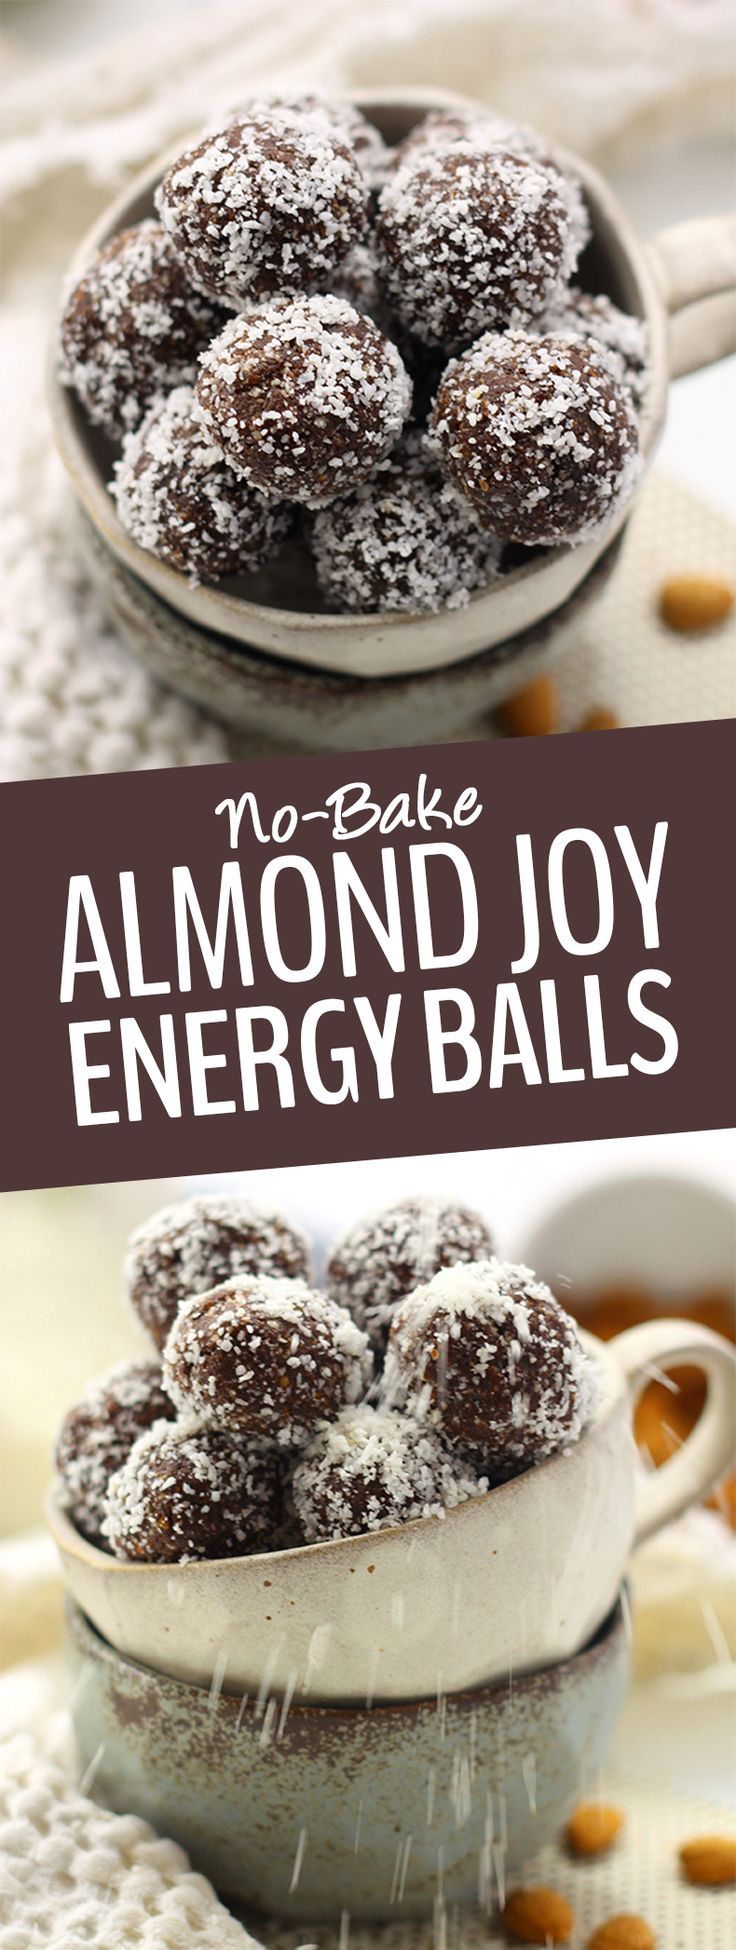 These No Bake Almond Joy Energy Balls Are Inspired By The